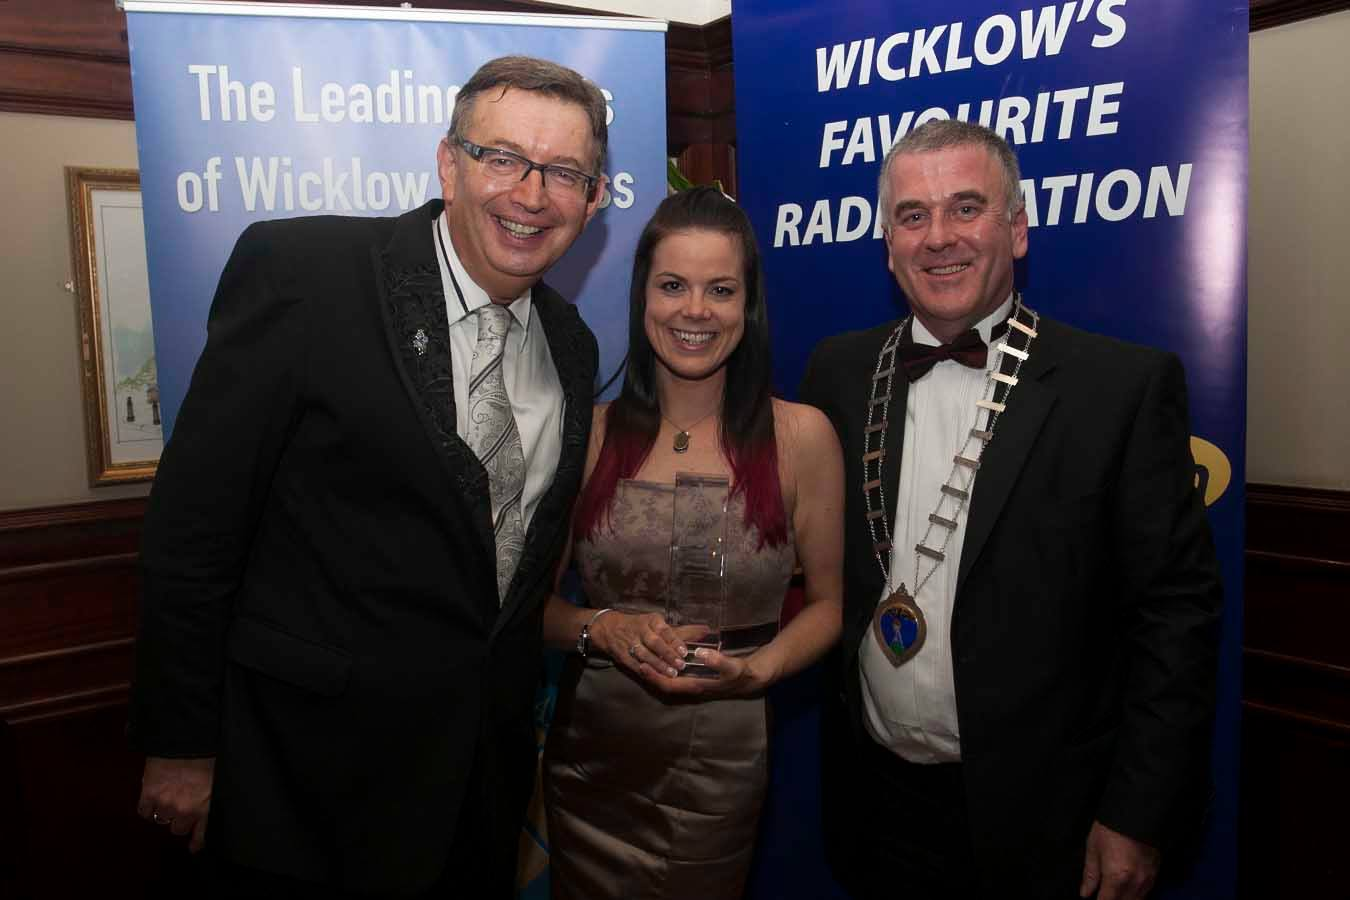 Wicklow Chamber Awards